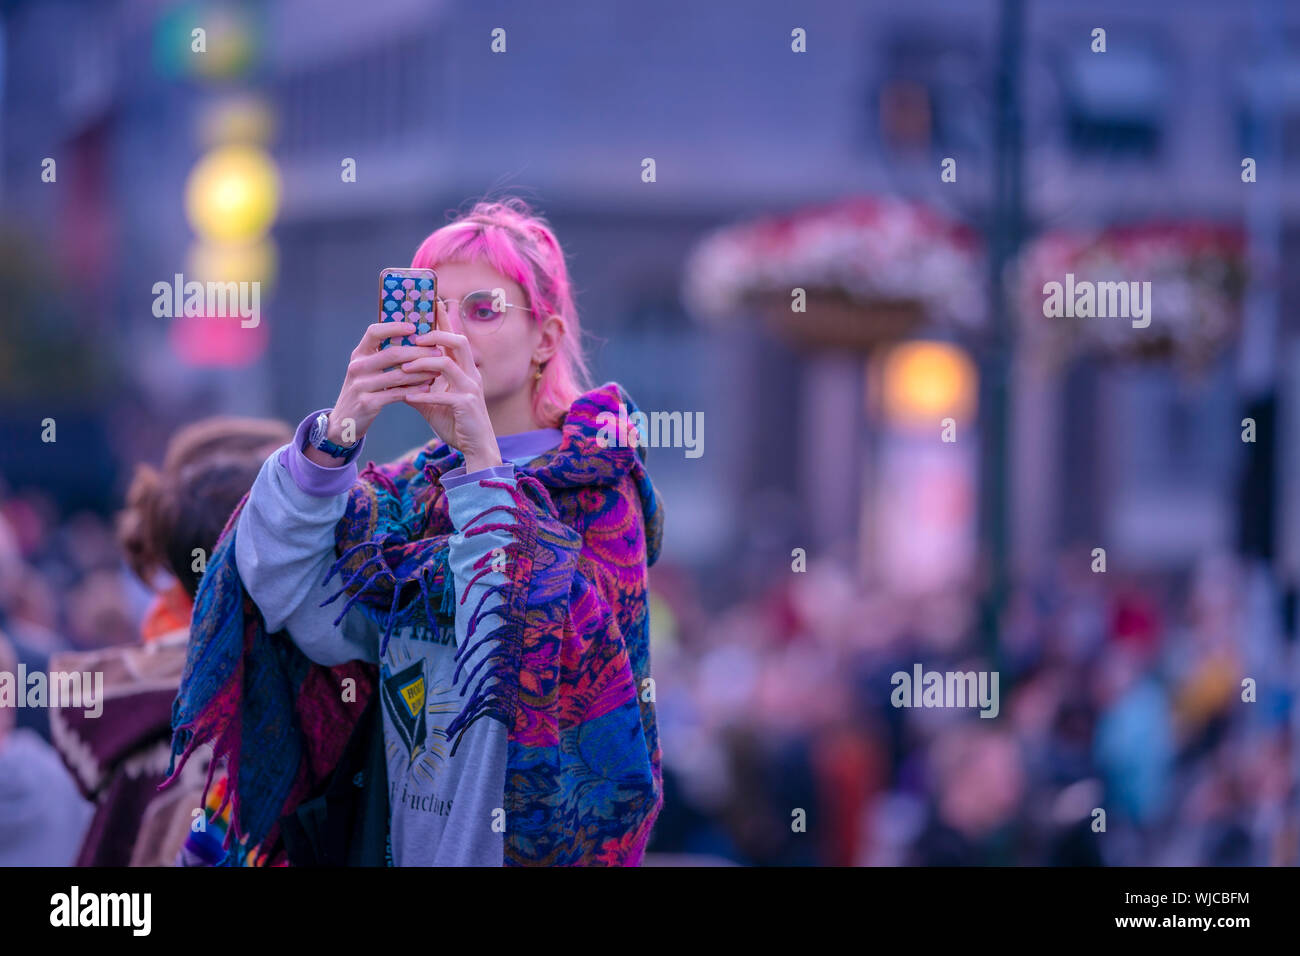 Girl taking a picture with a smart phone, Menningarnott or Cultural day, Reykjavik, Iceland. Stock Photo